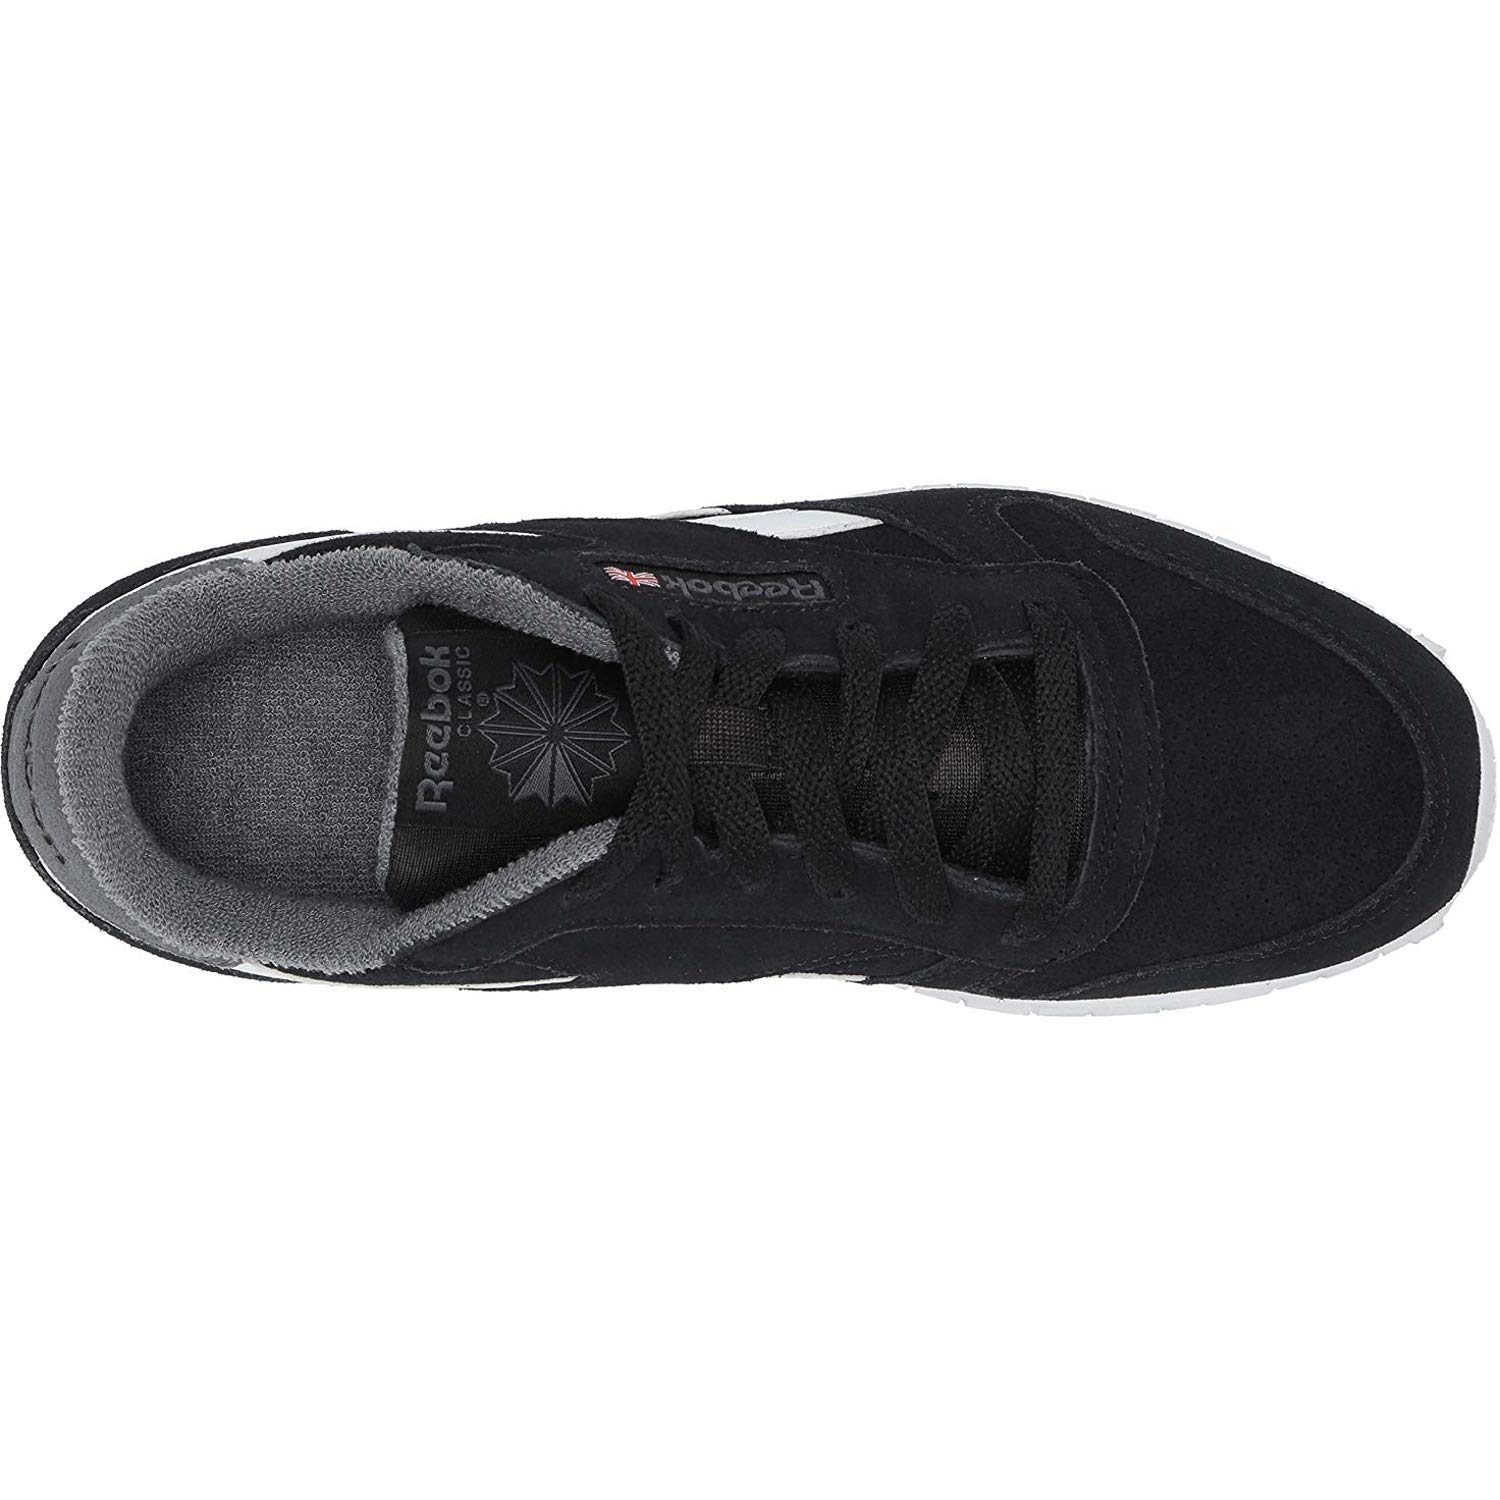 d43e3d7c0bbf Reebok Classic Leather Black True Grey Suede Youth Trainers Shoes  Amazon.co .uk  Shoes   Bags